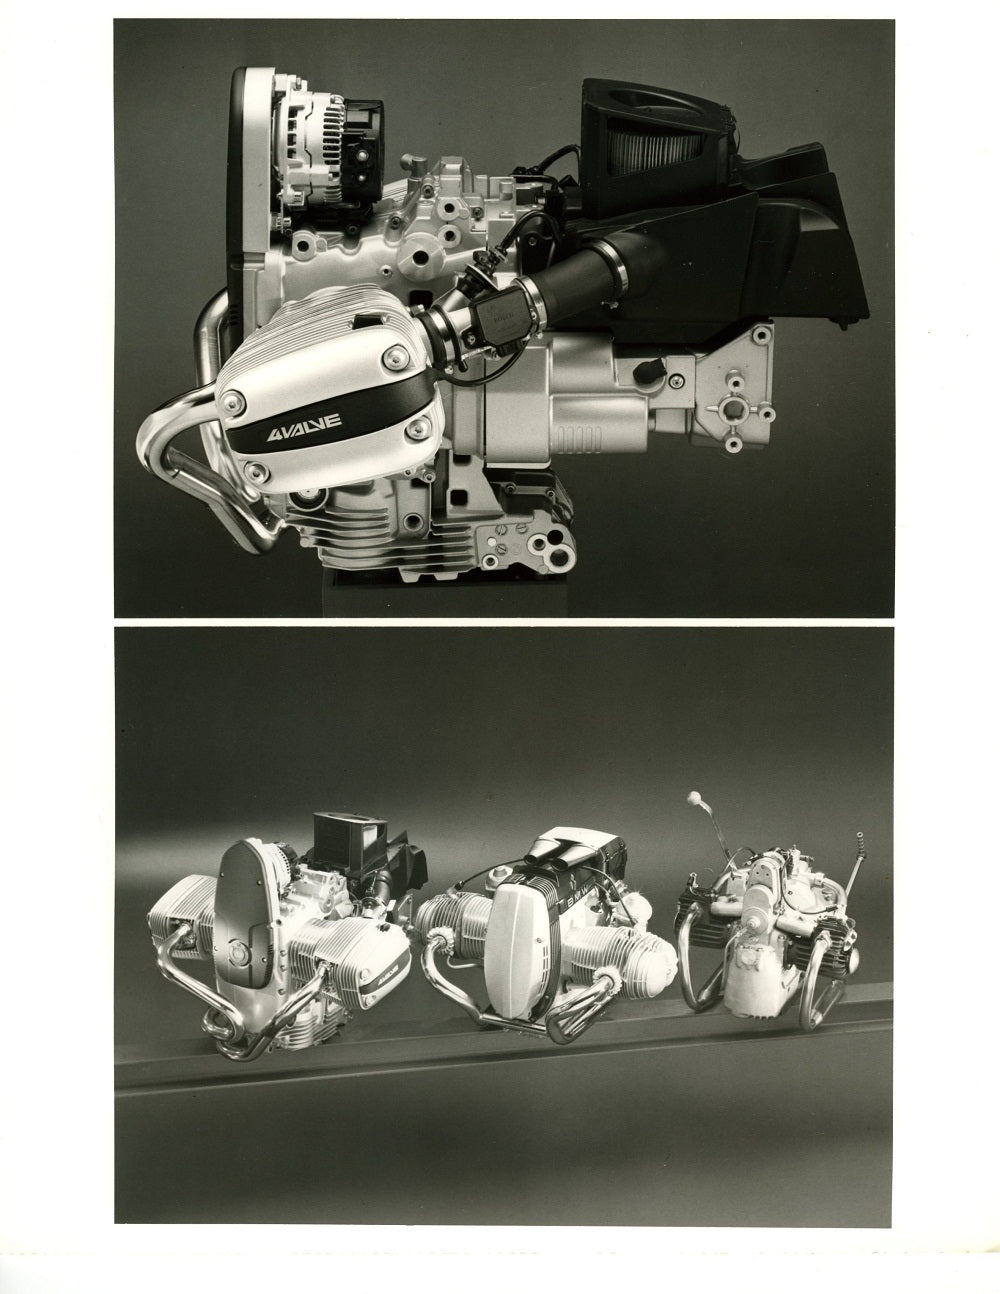 Press Photo - BMW Boxer Engine Press Photo (1st version)